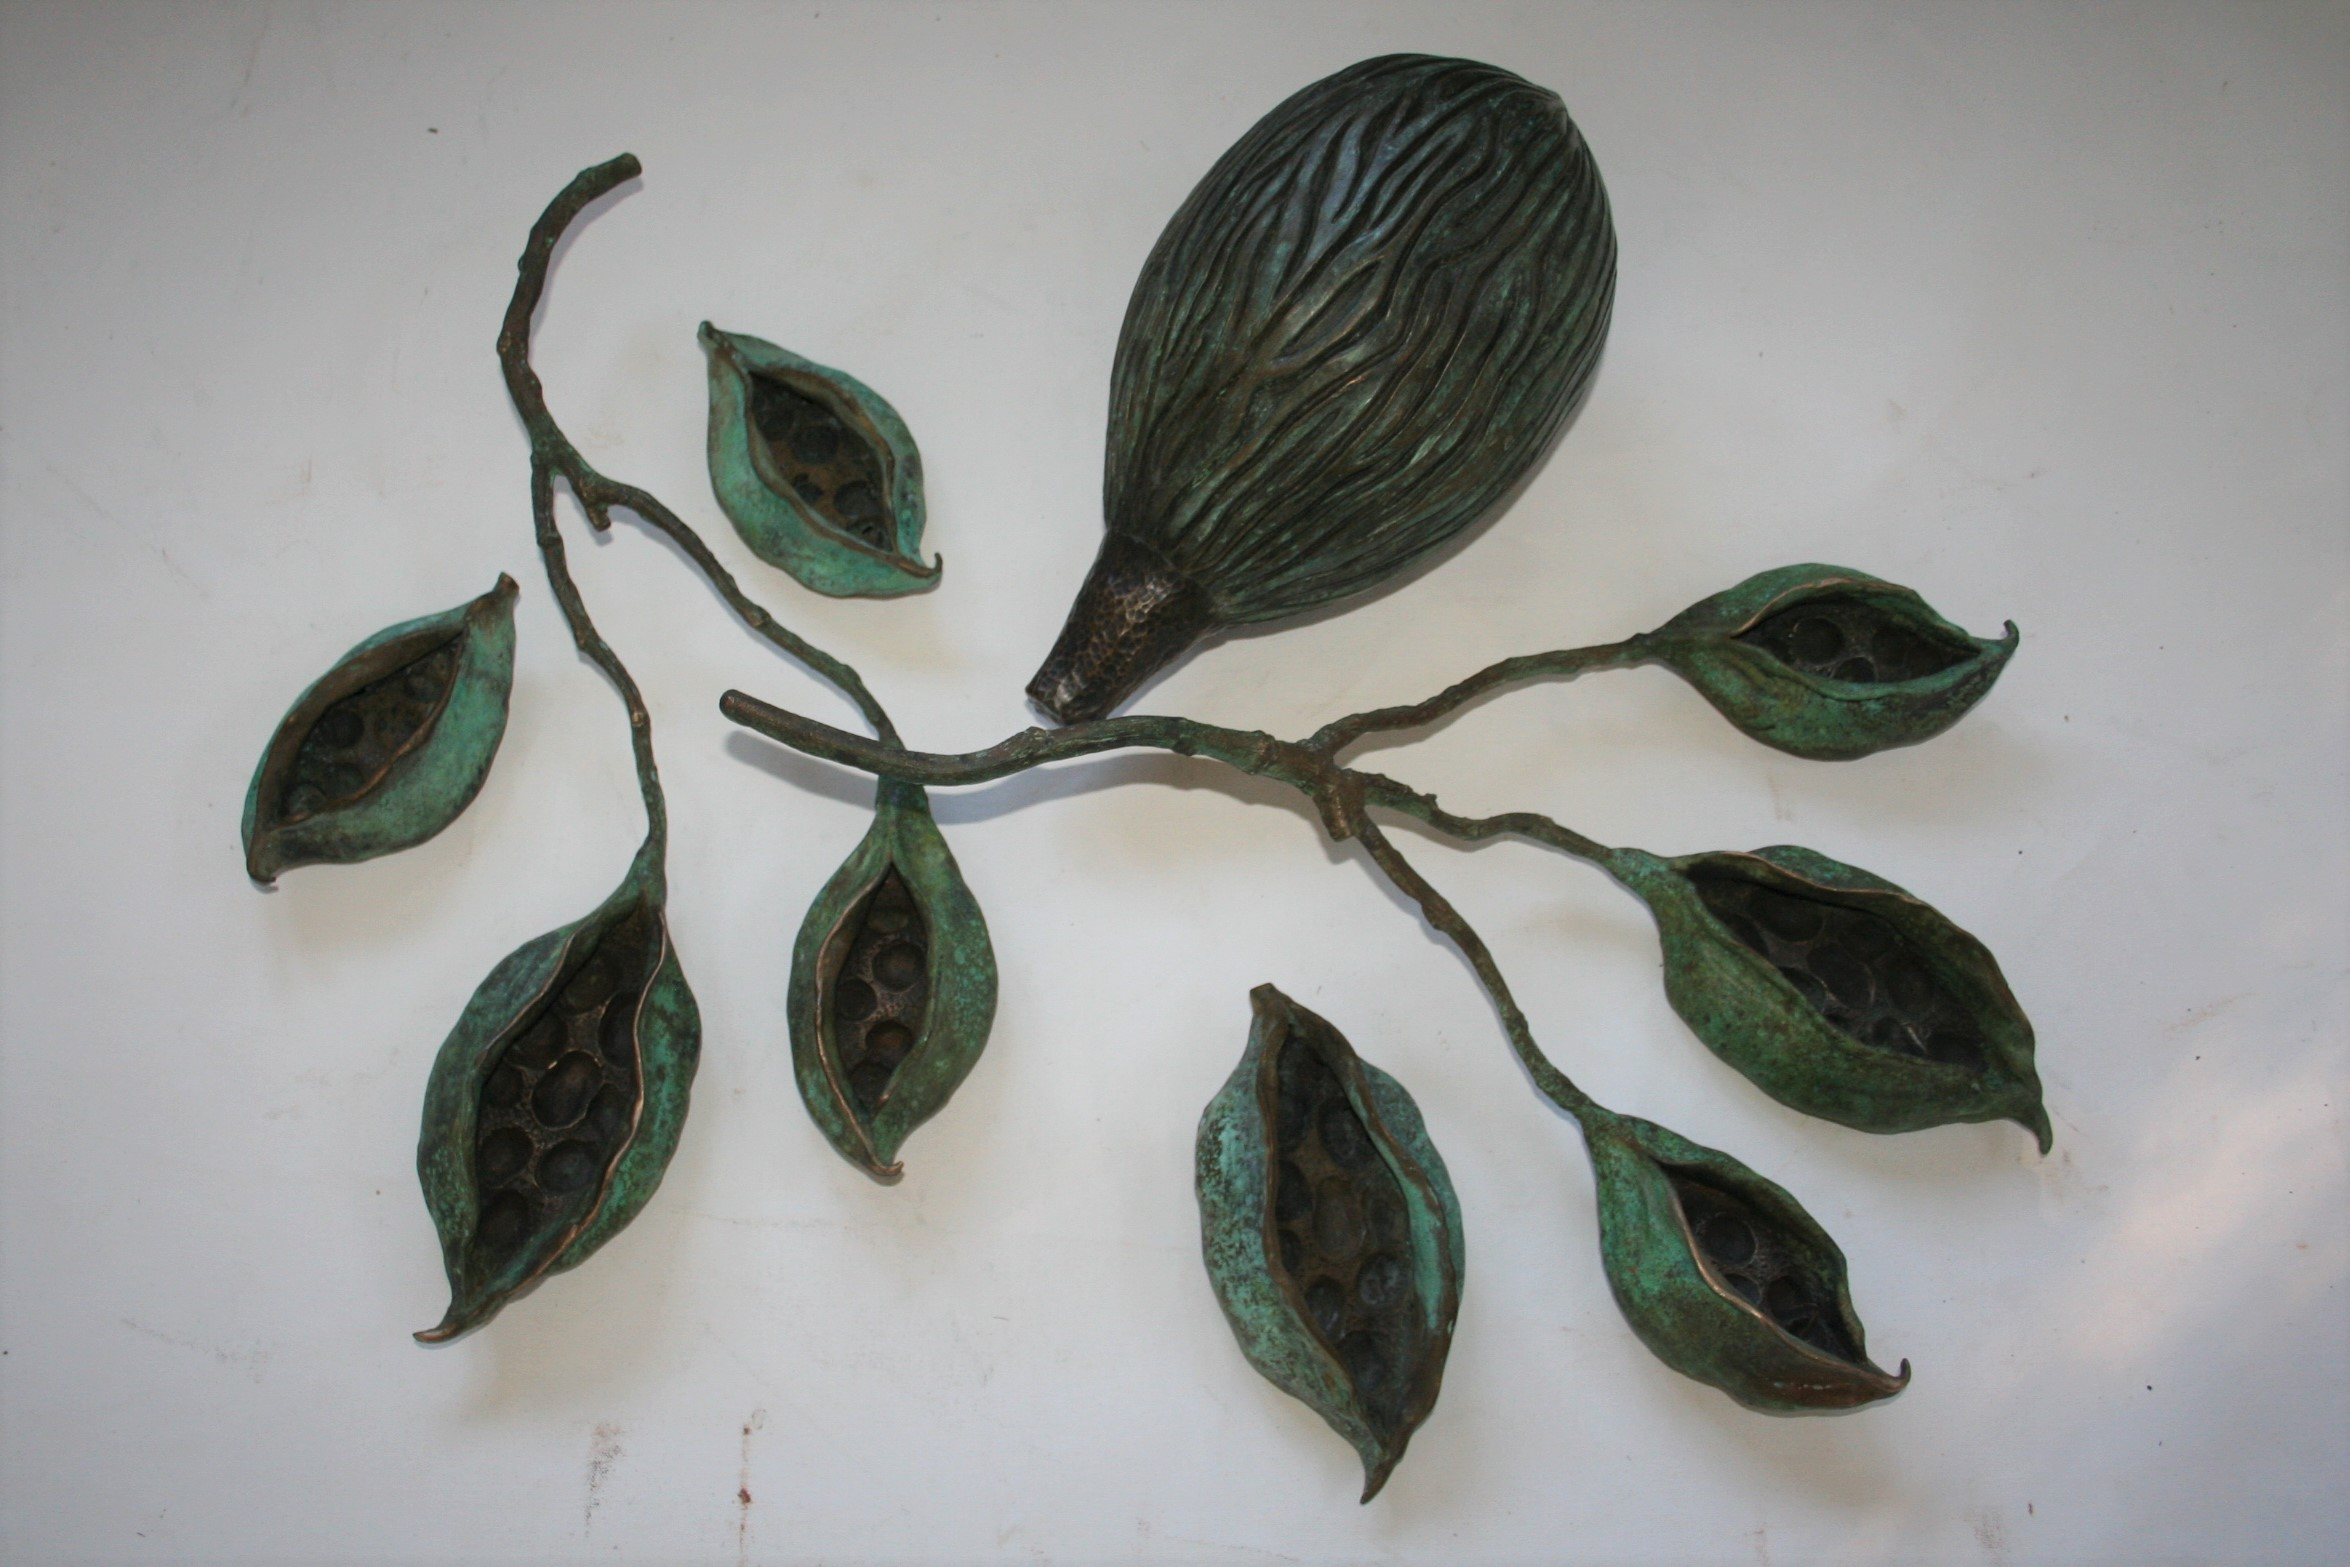 COLLECTION OF PODS